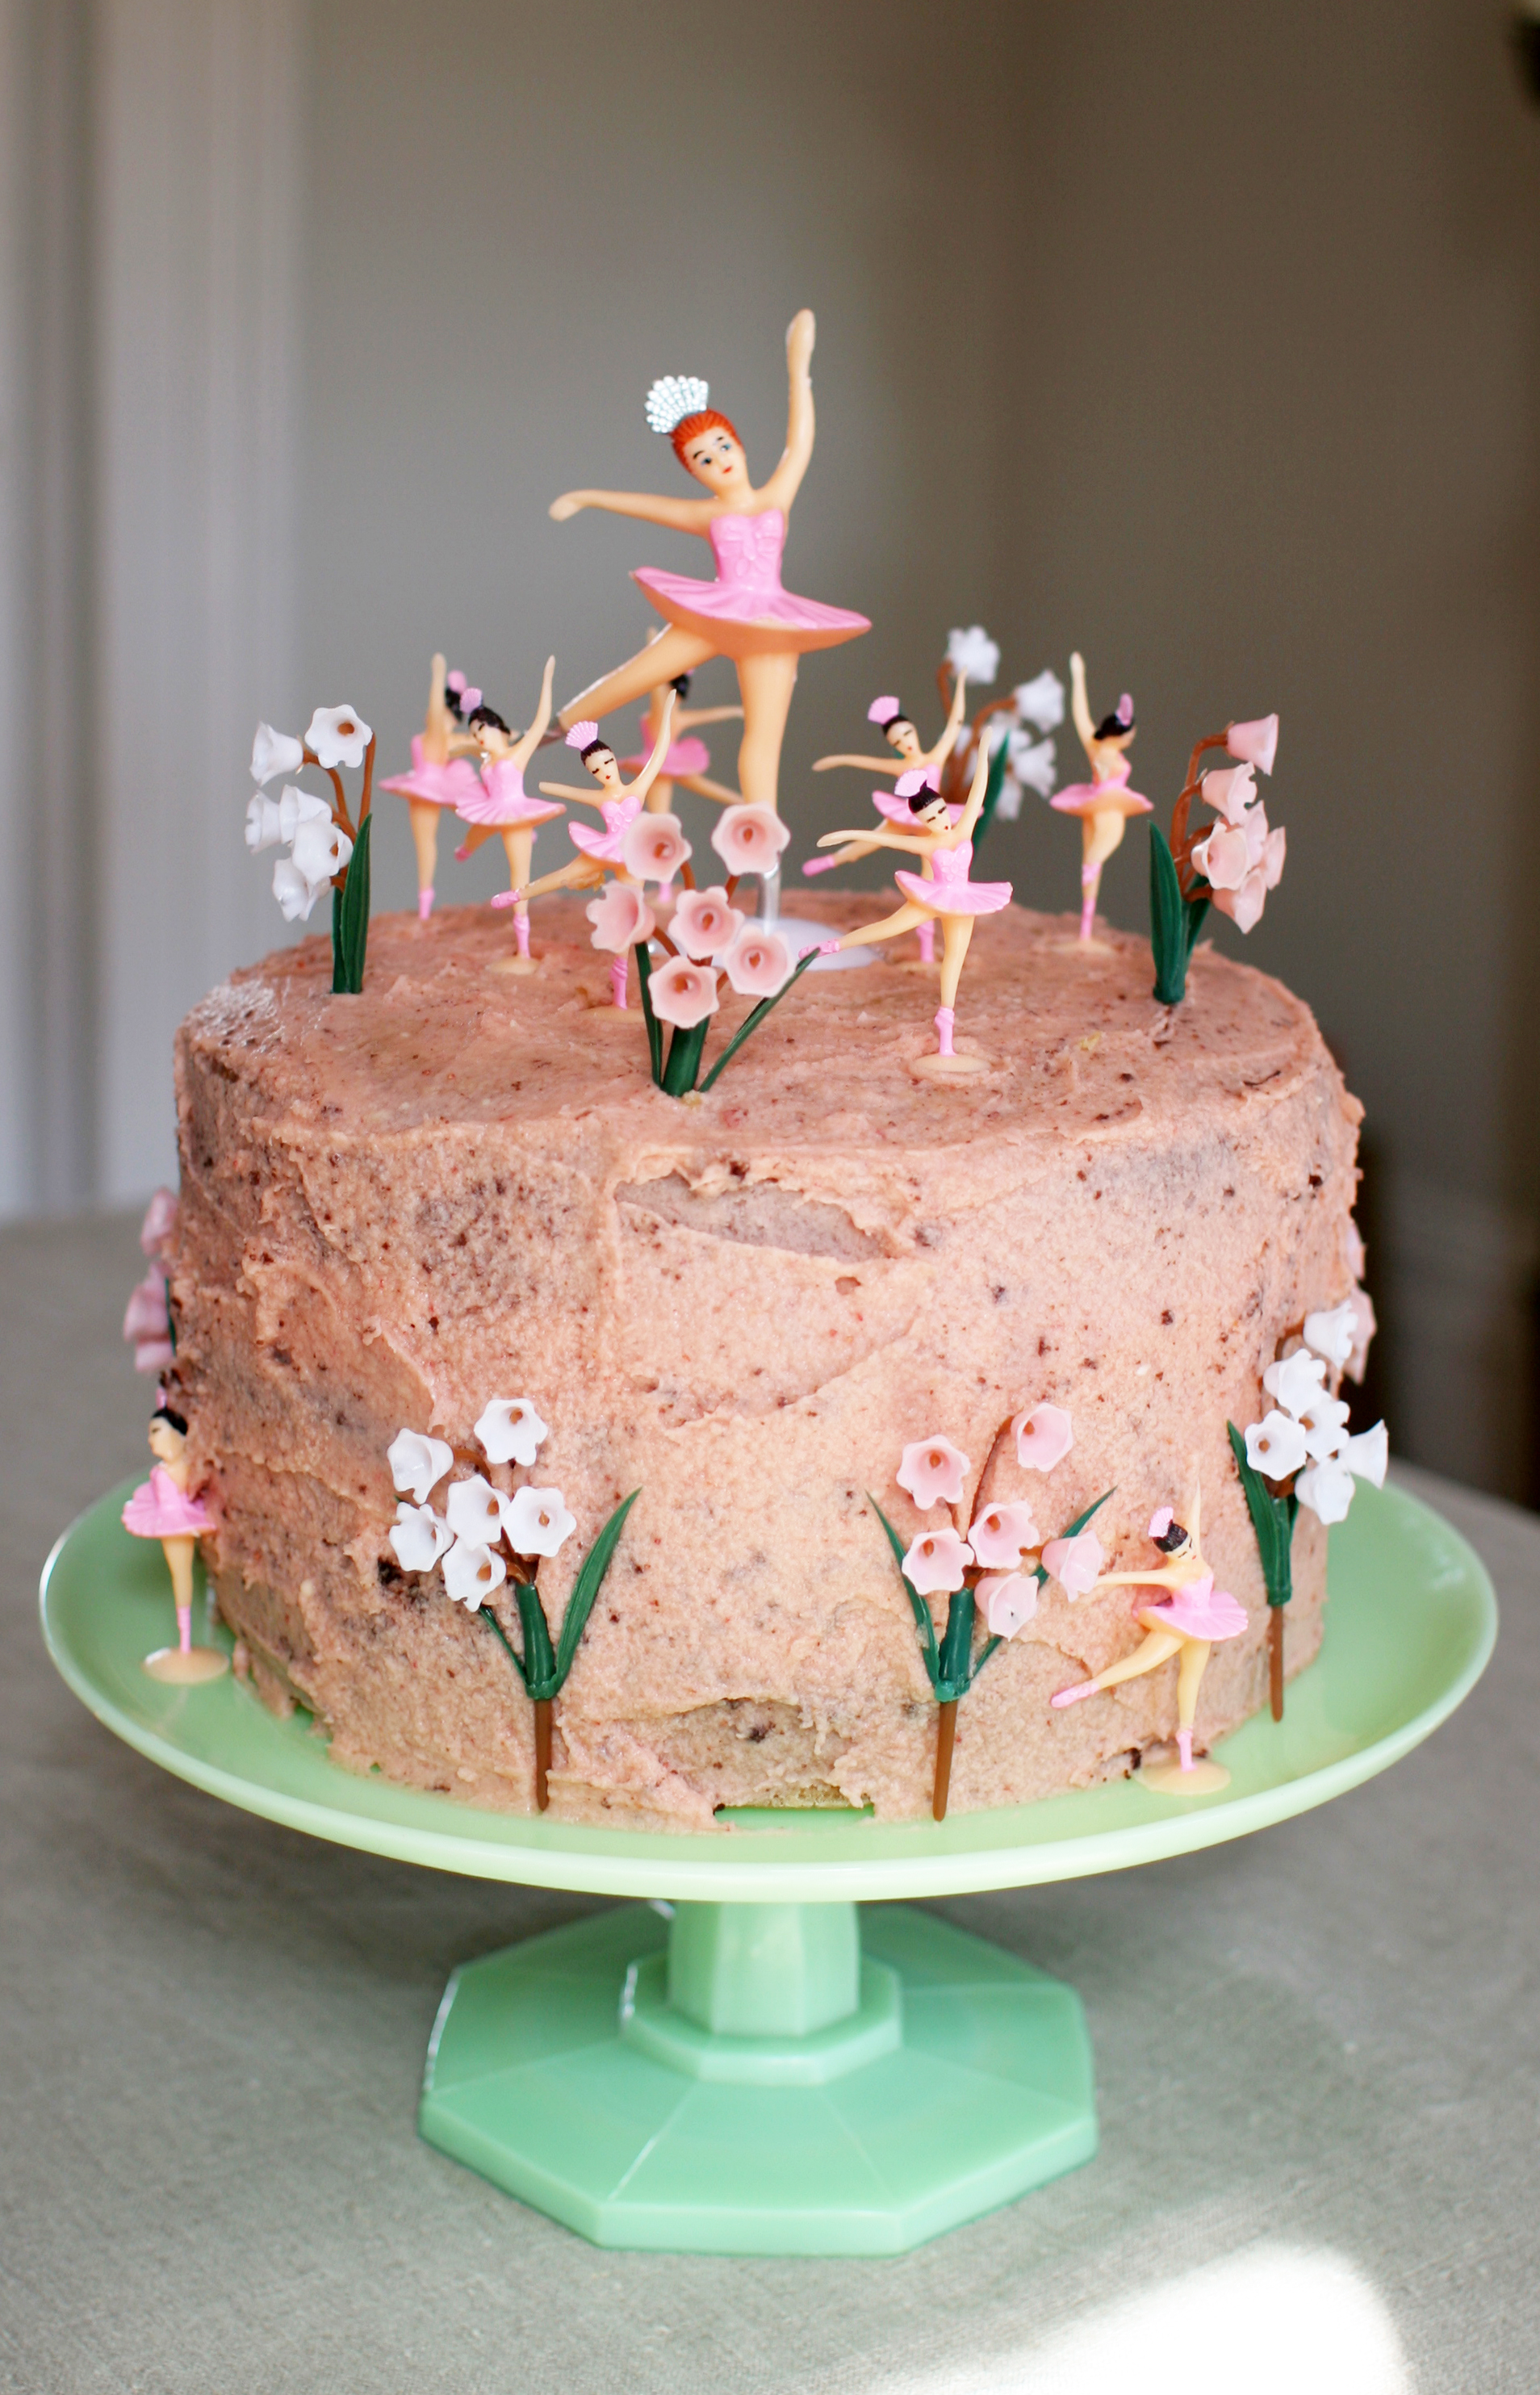 25 Best Ideas About Ballerina Birthday Cakes On Pinterest Ballet